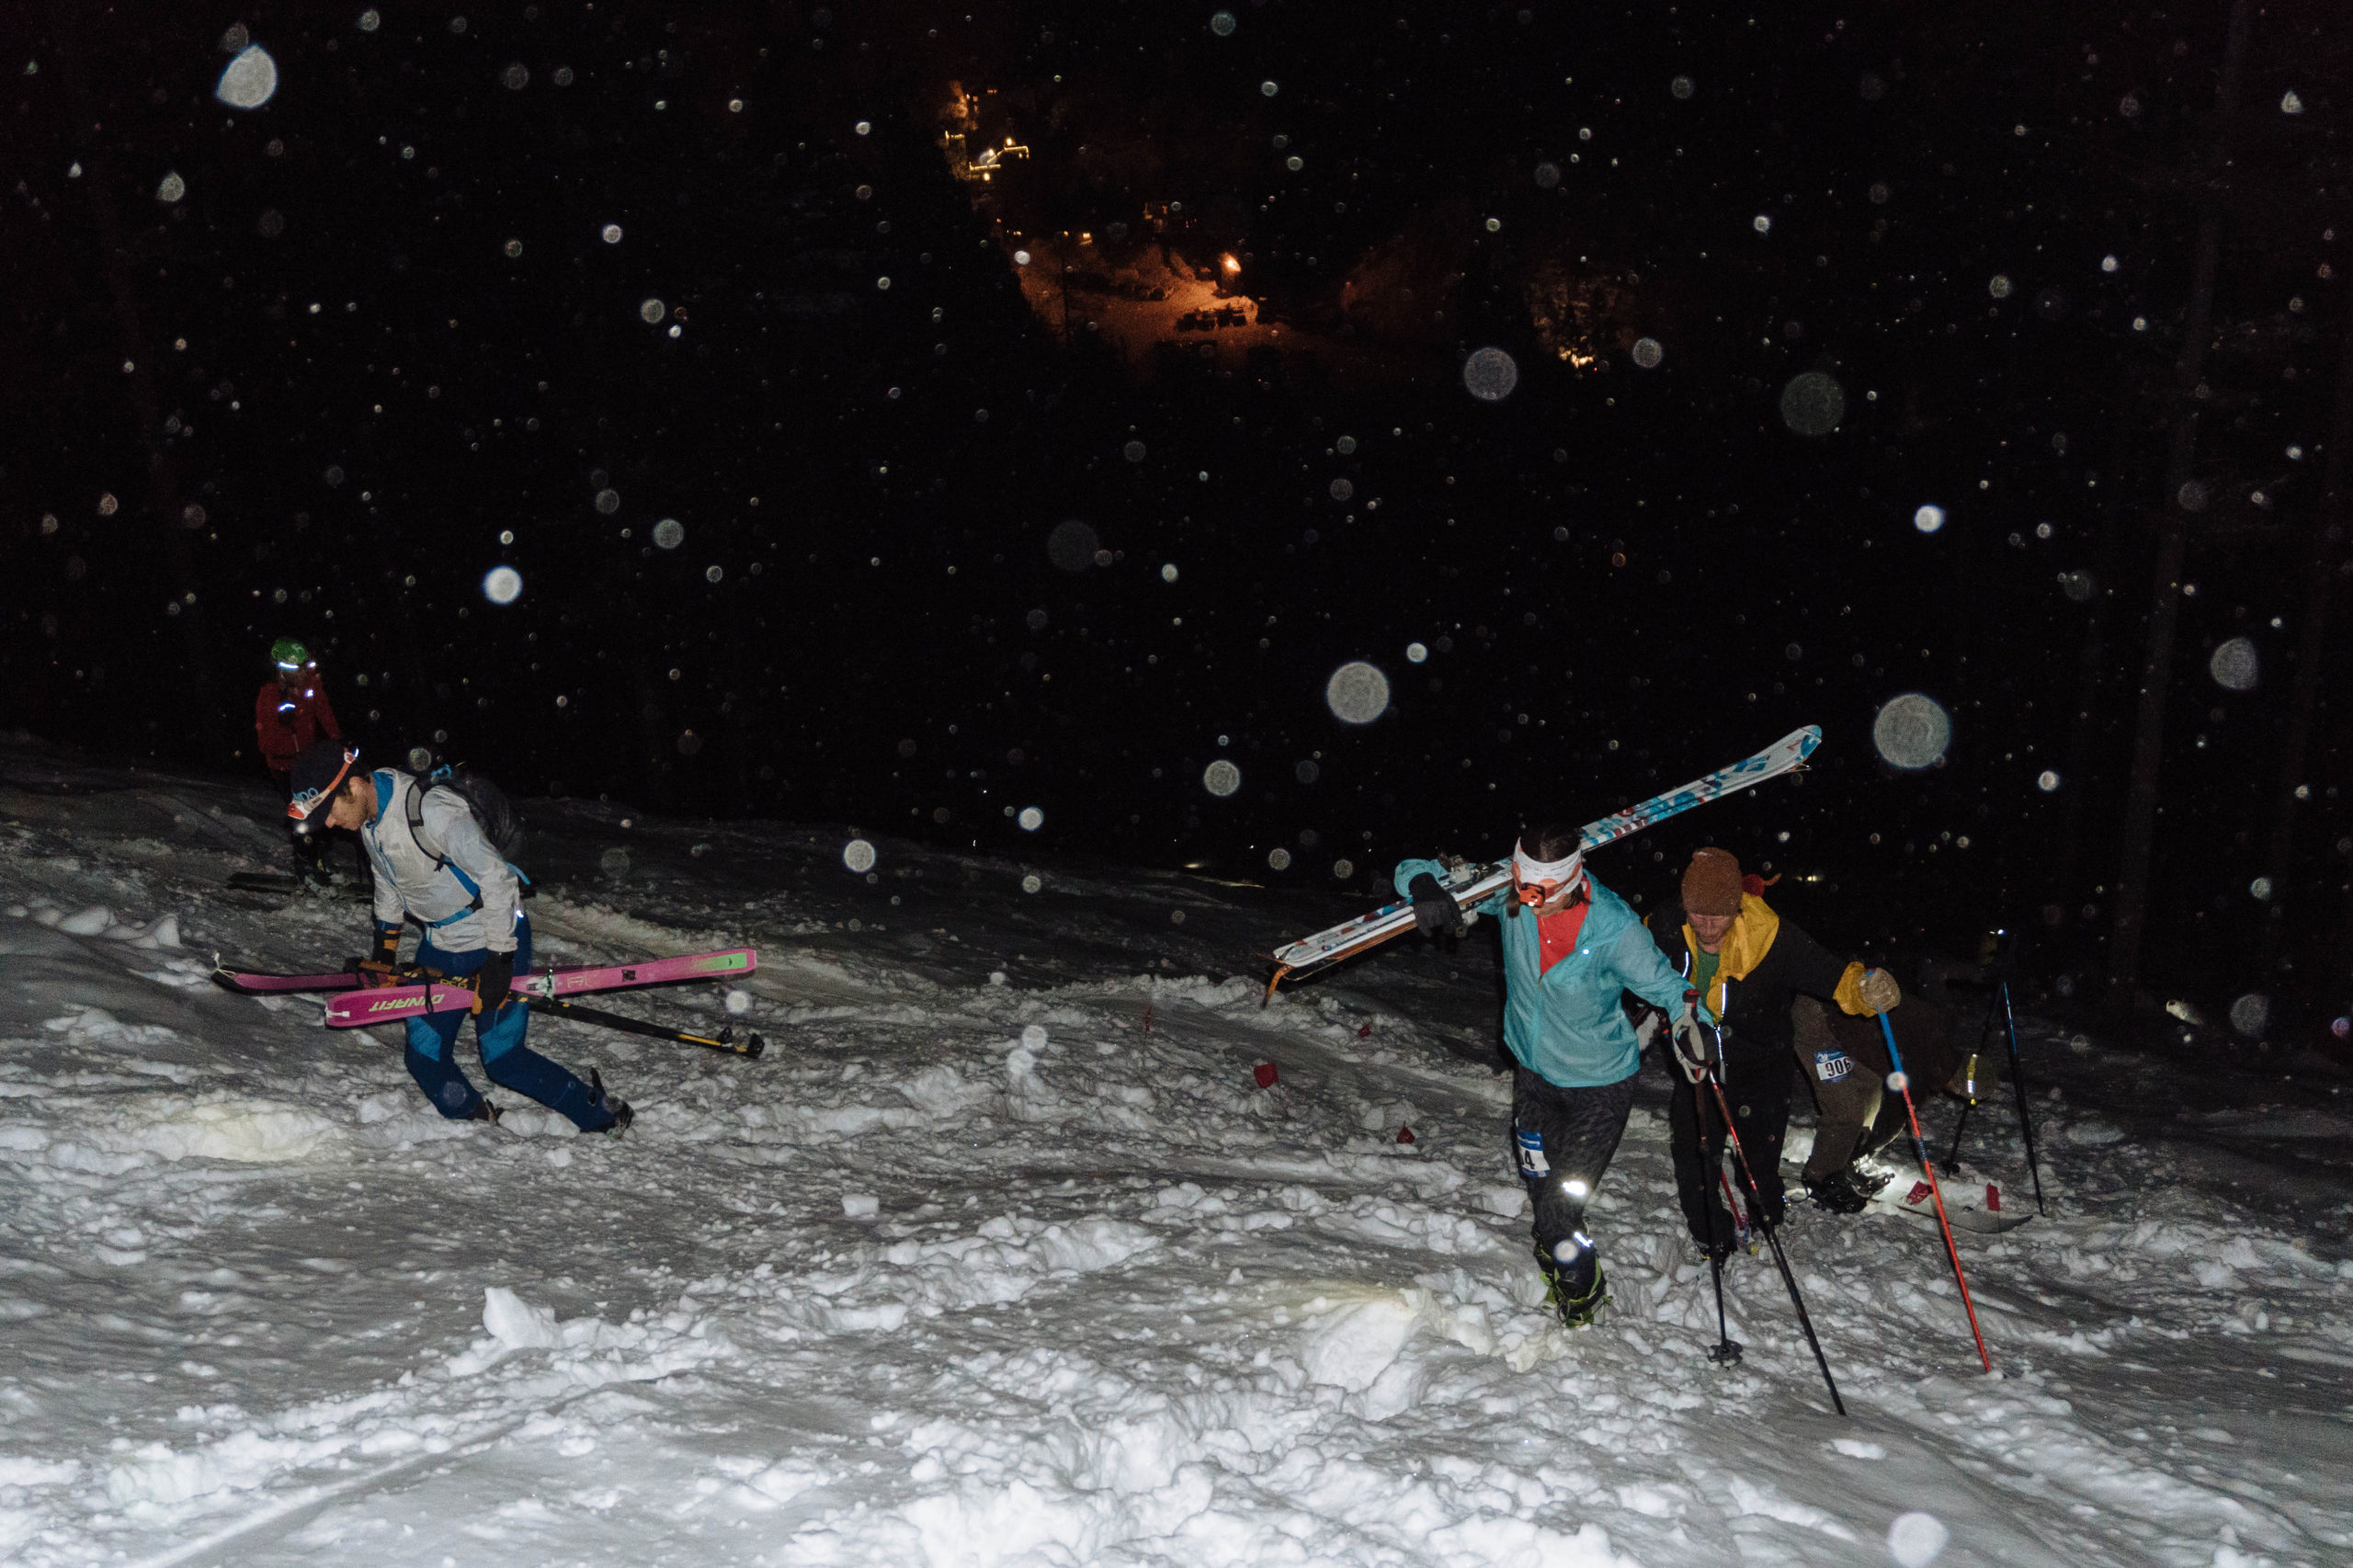 Beginner's Guide to SkiMo Racing missoula rando racers, CREDIT bobby jahrig (1)